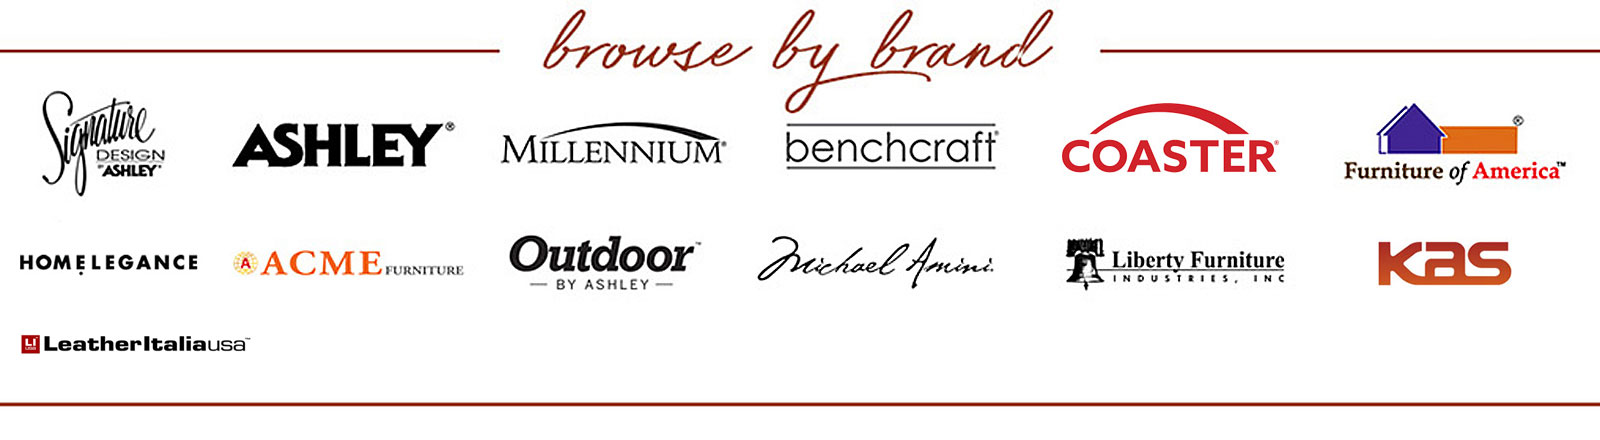 Best Furniture Brands Denver, CO